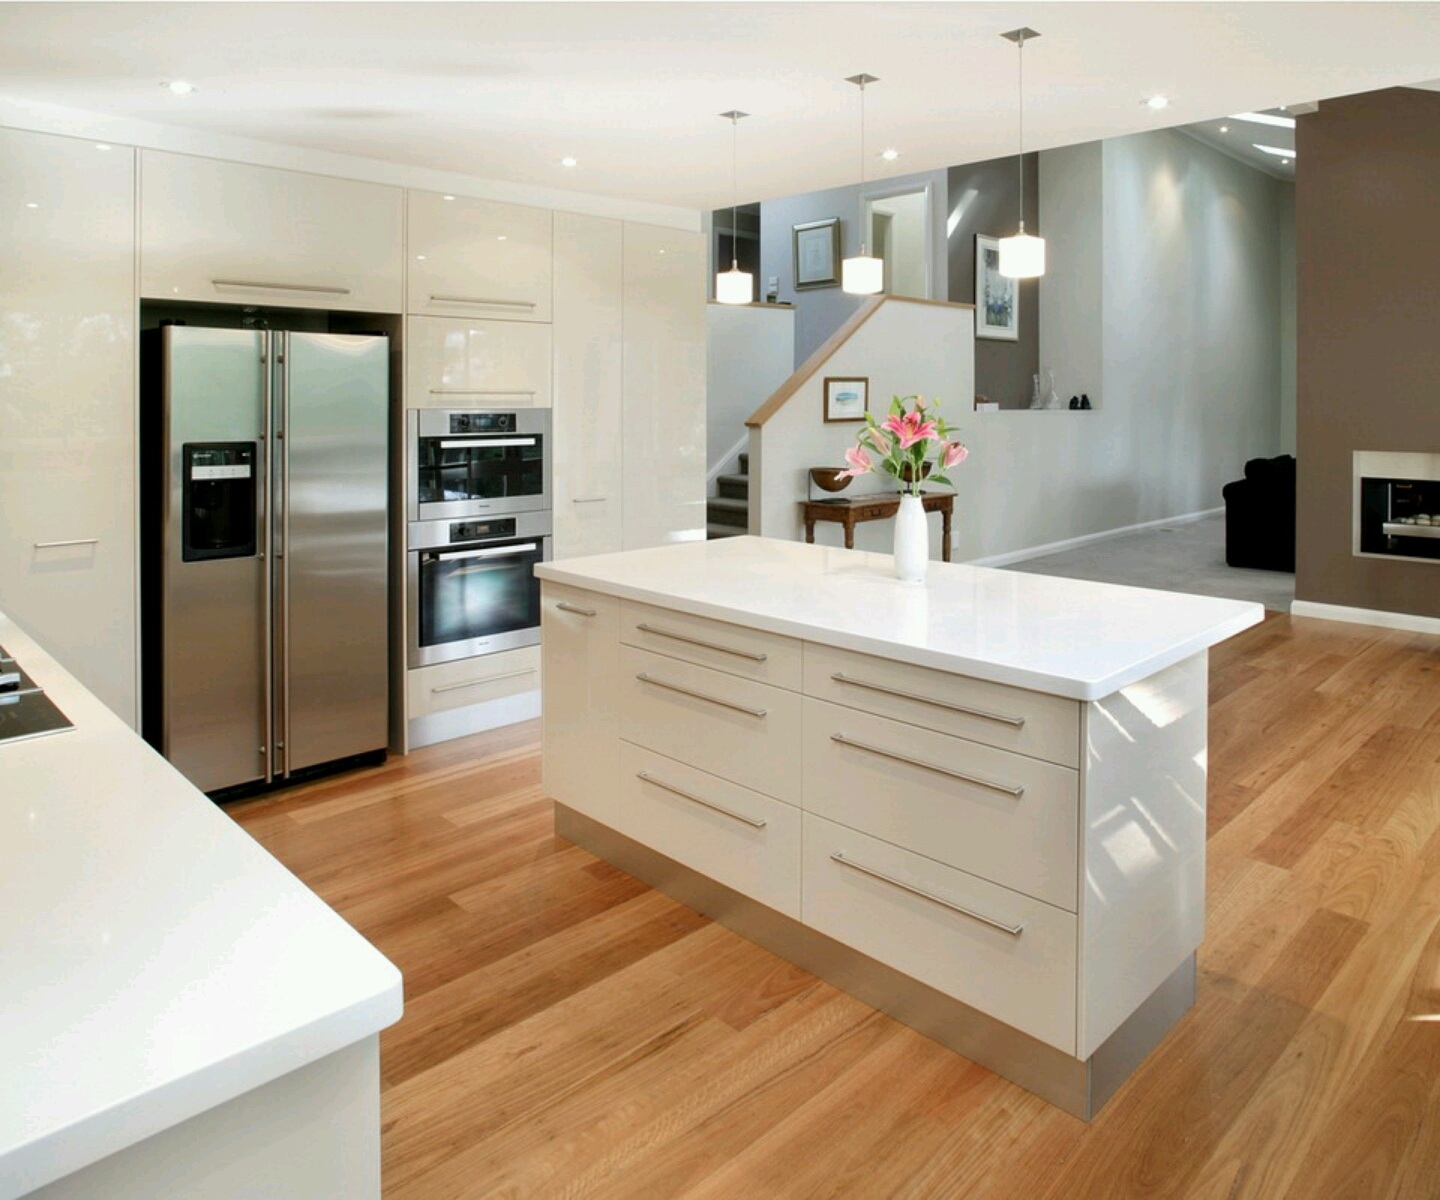 Modern Contemporary Kitchen Design: Luxury Kitchen, Modern Kitchen Cabinets Designs